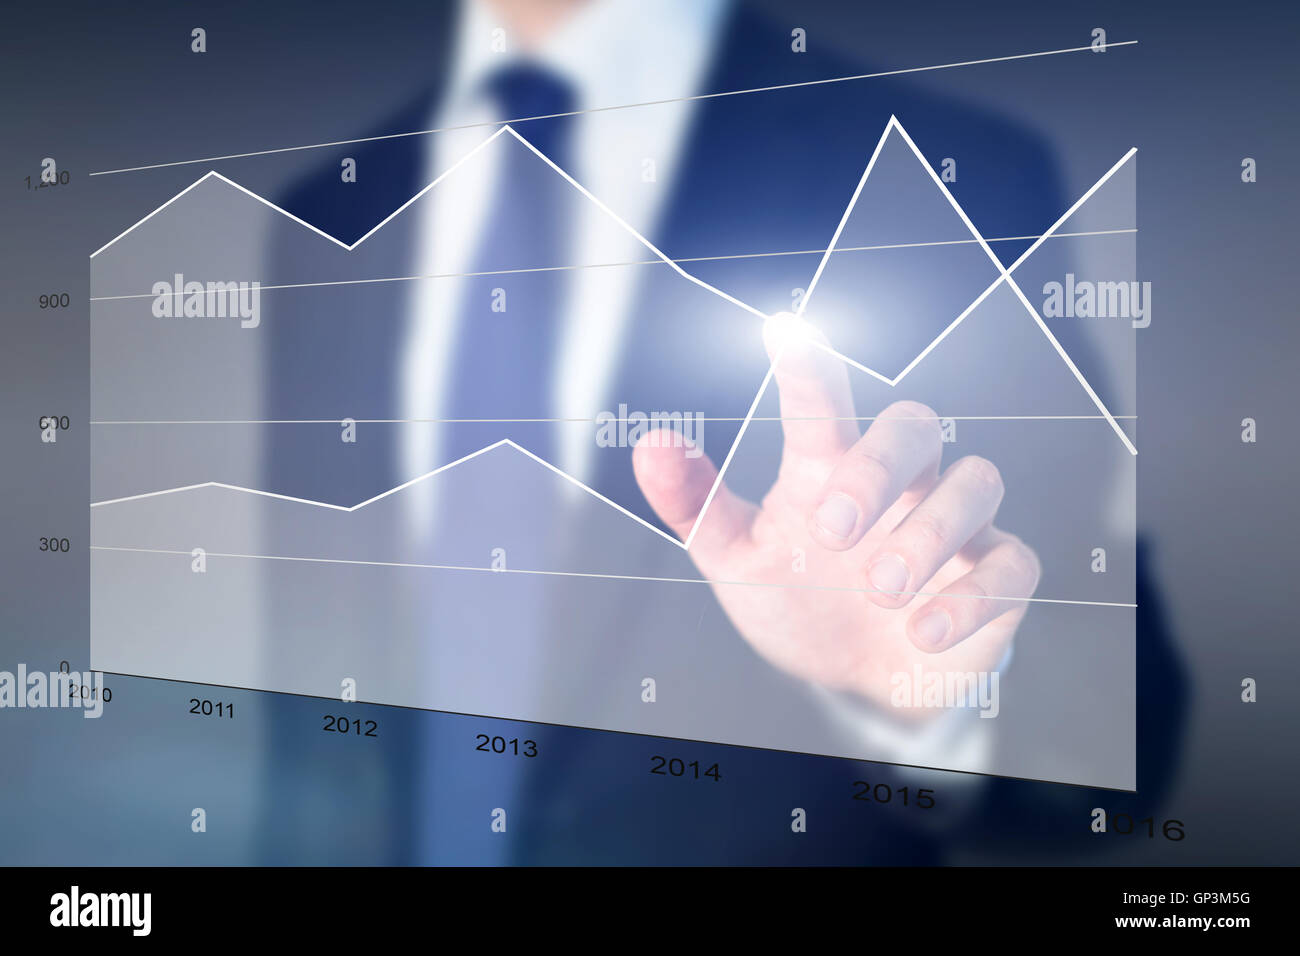 sales and expenses, business performance analytics - Stock Image